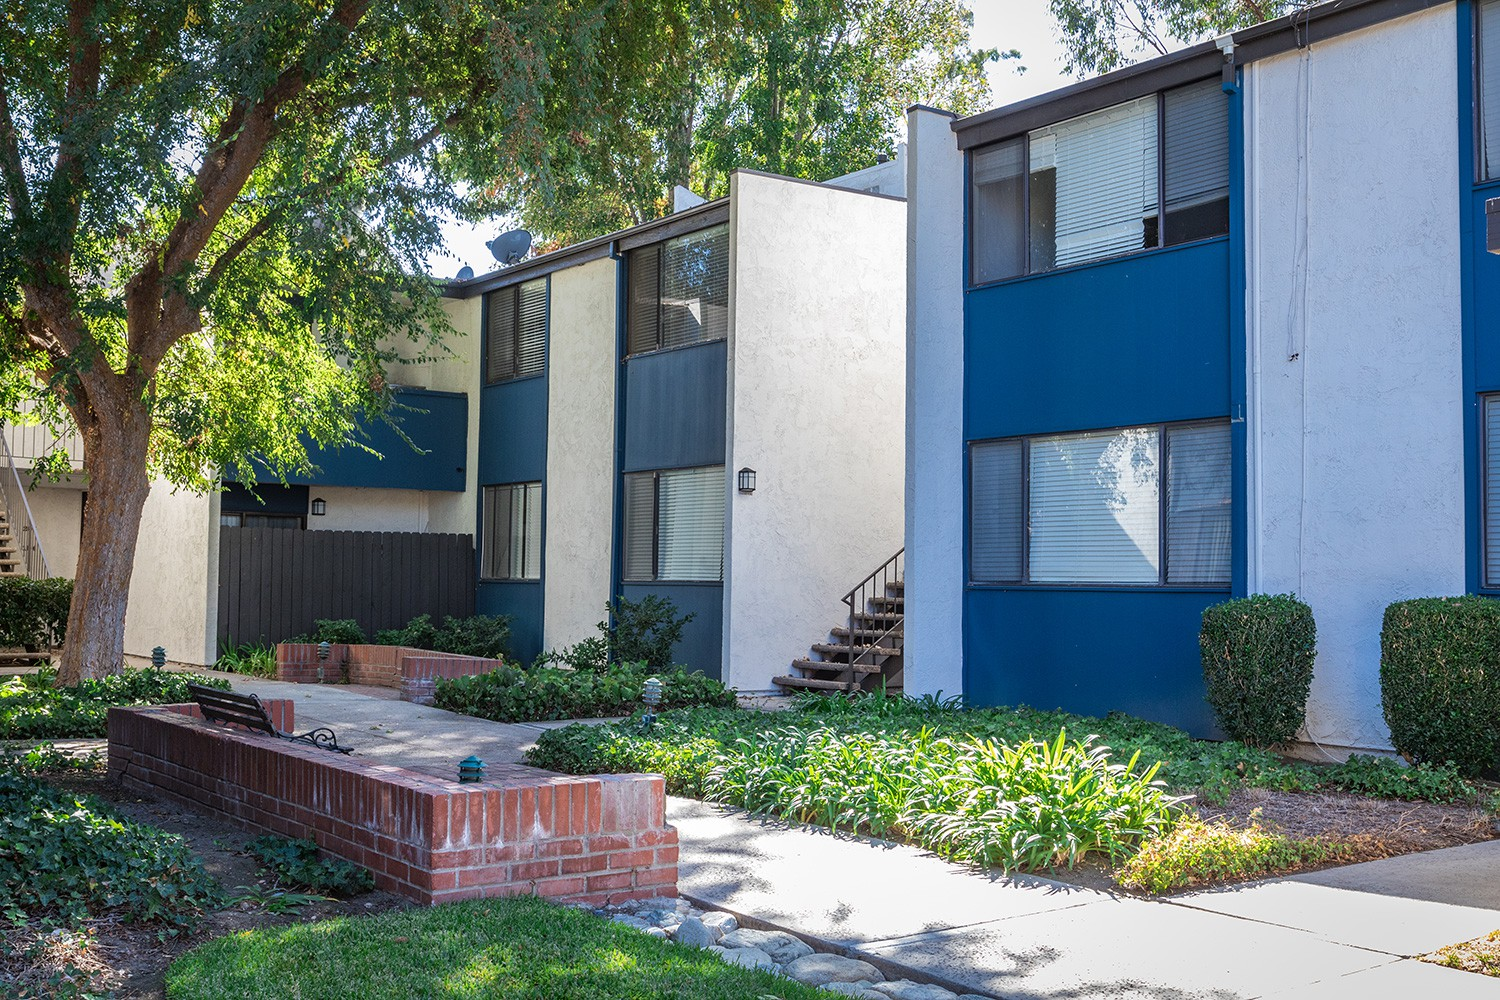 Apartments Near Scripps Claremont Park for Scripps College Students in Claremont, CA